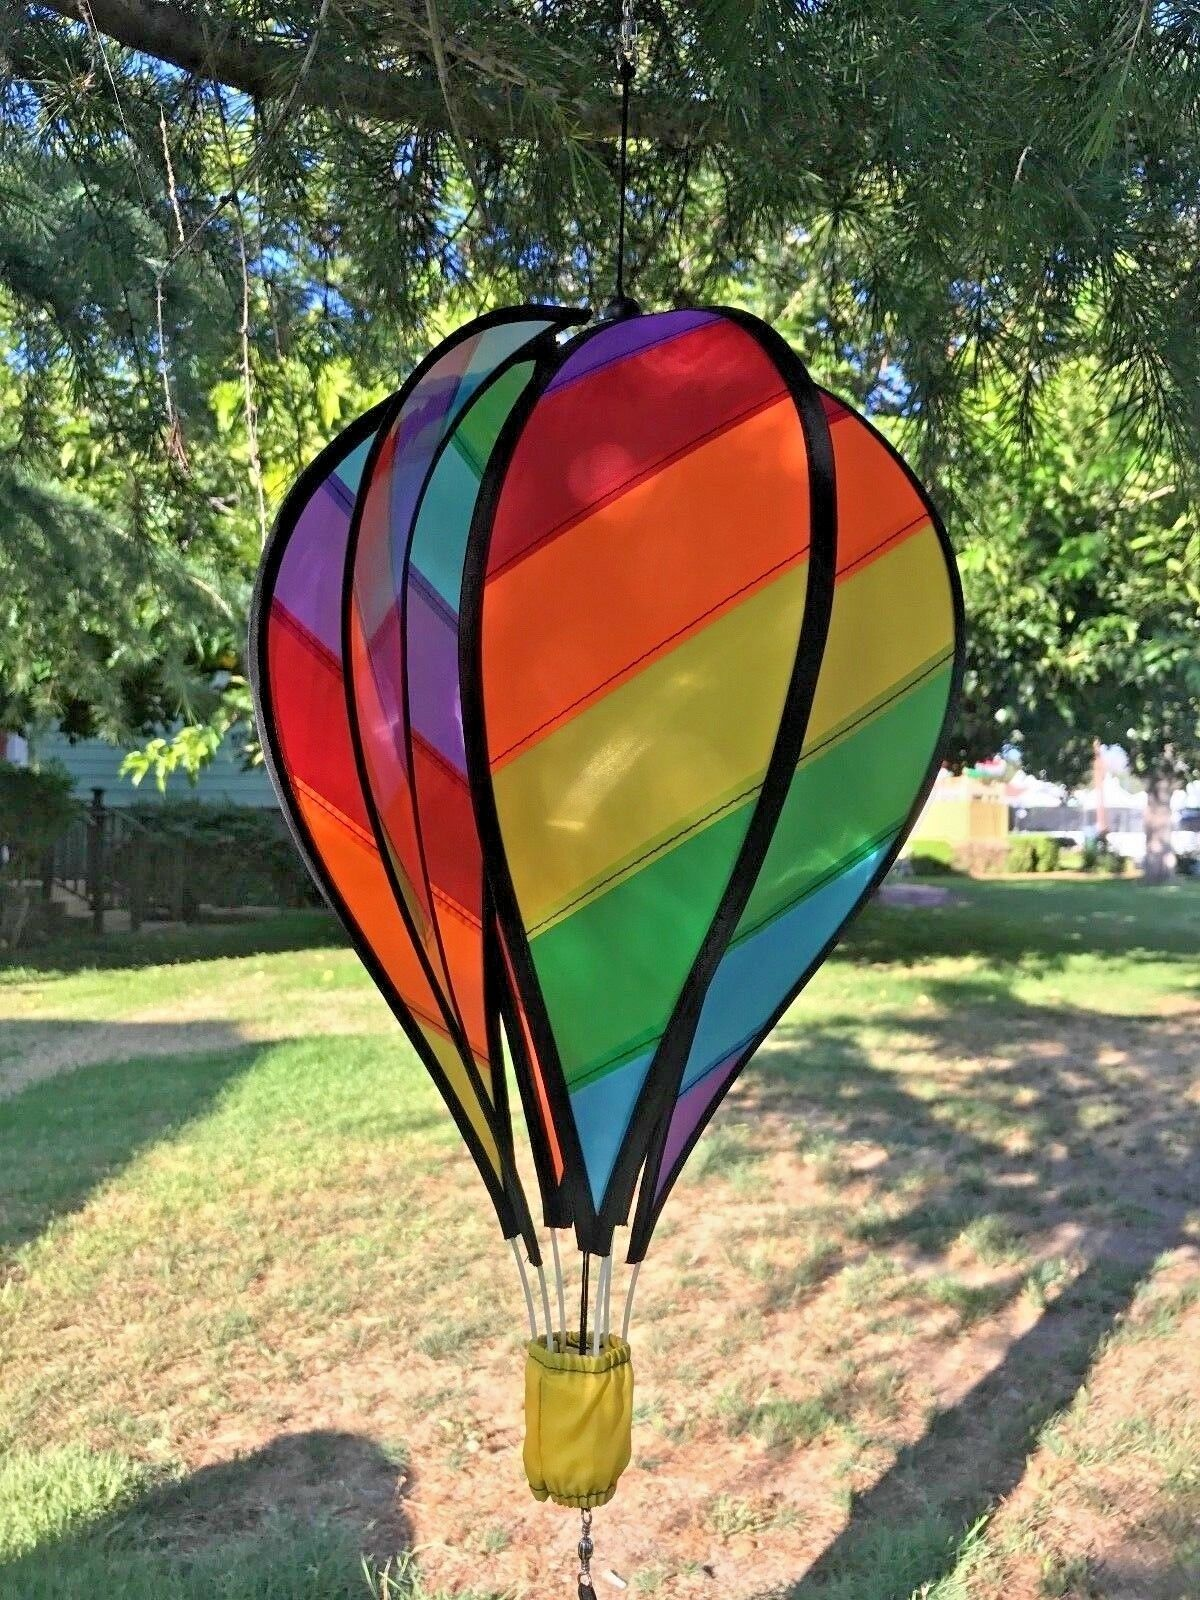 Details about Hot Air Balloon Wind Spinner Wind spinners